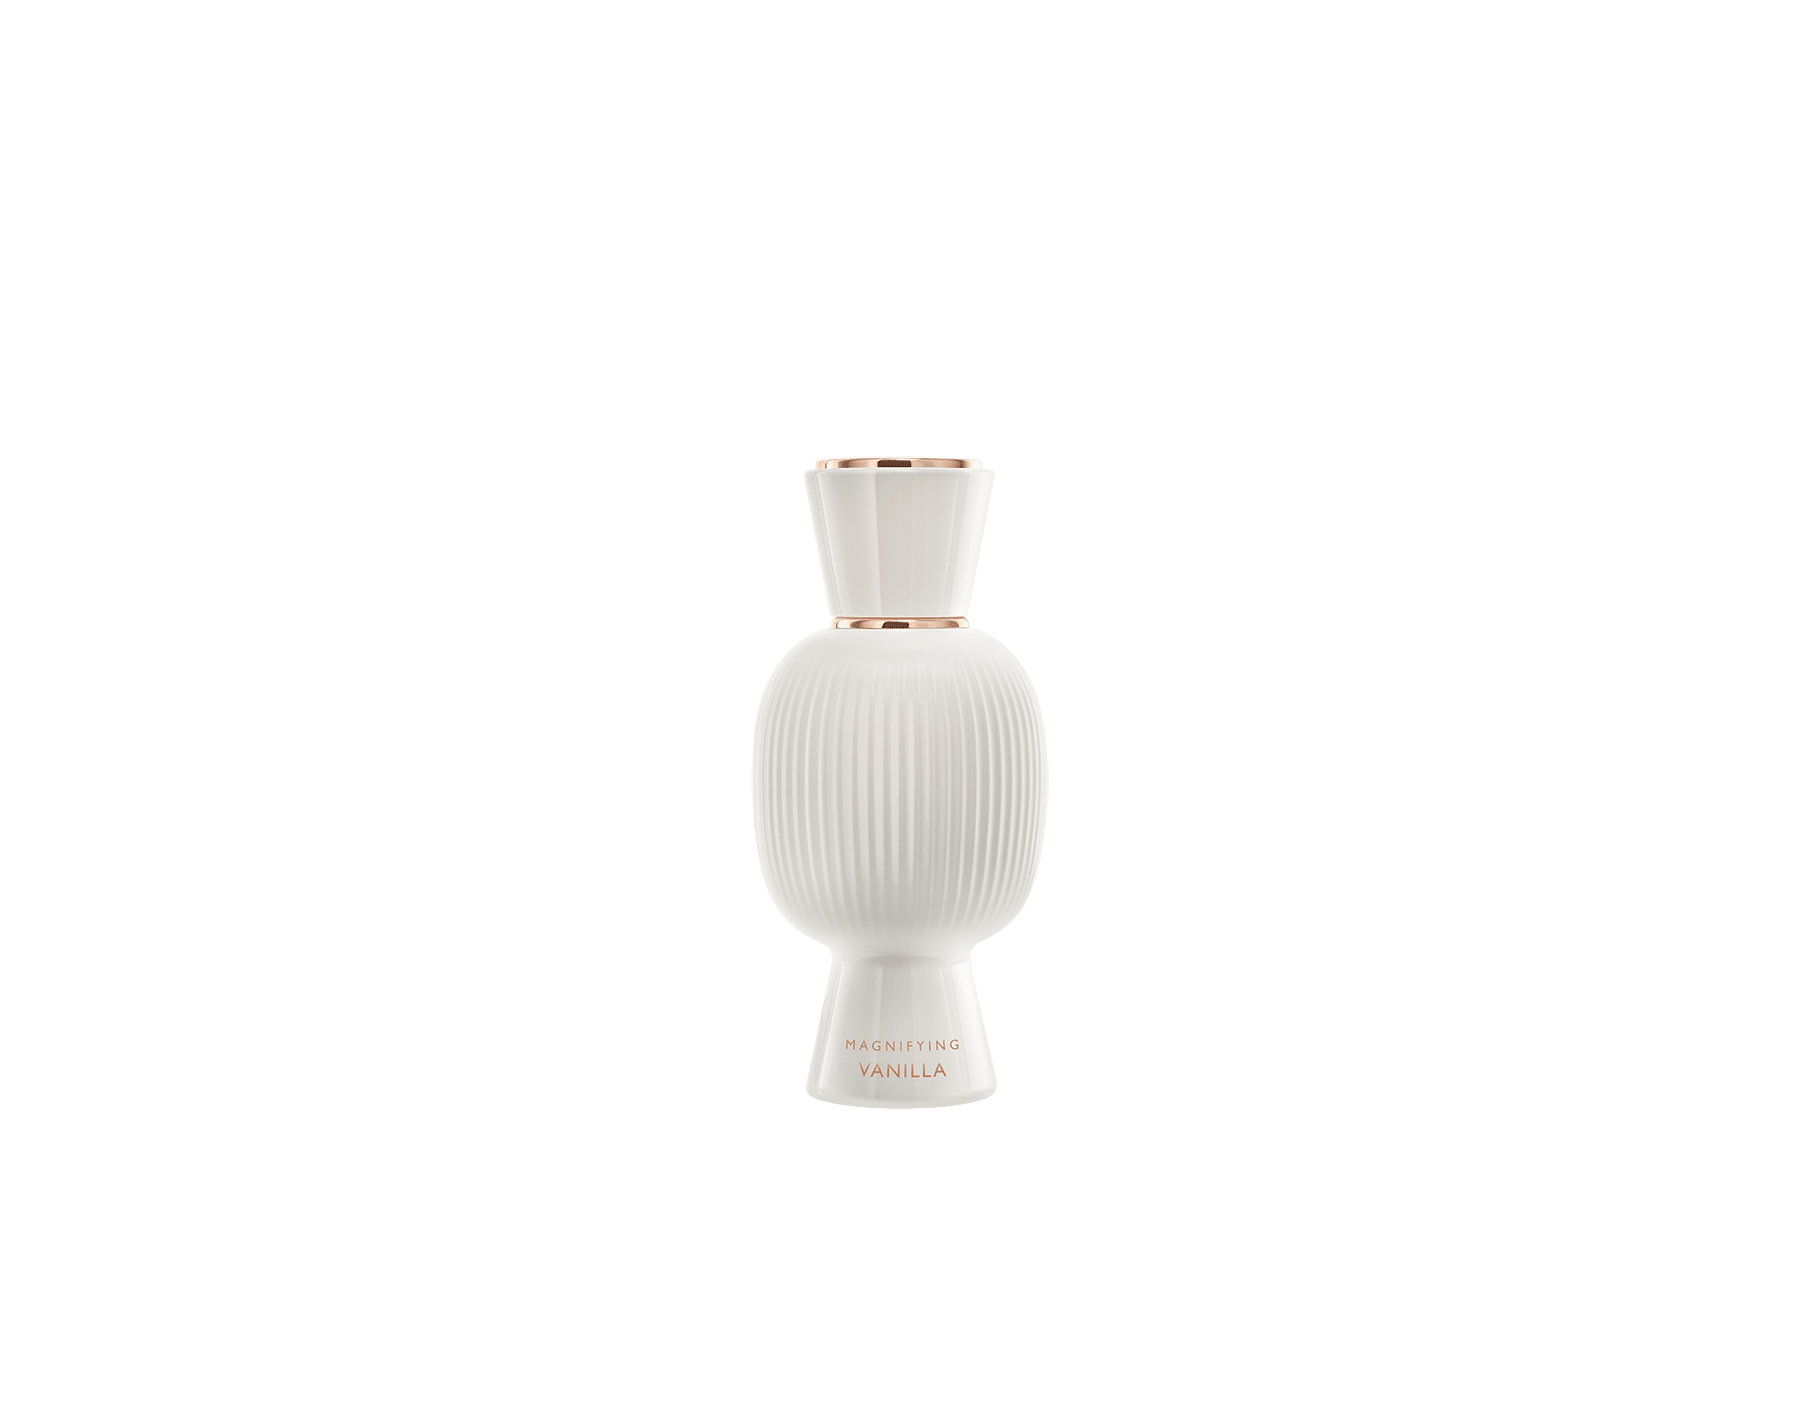 Reveal a new facet of your ALLEGRA fragrance with Magnifying Vanilla. #MagnifyForMore Thrill 41283 image 6